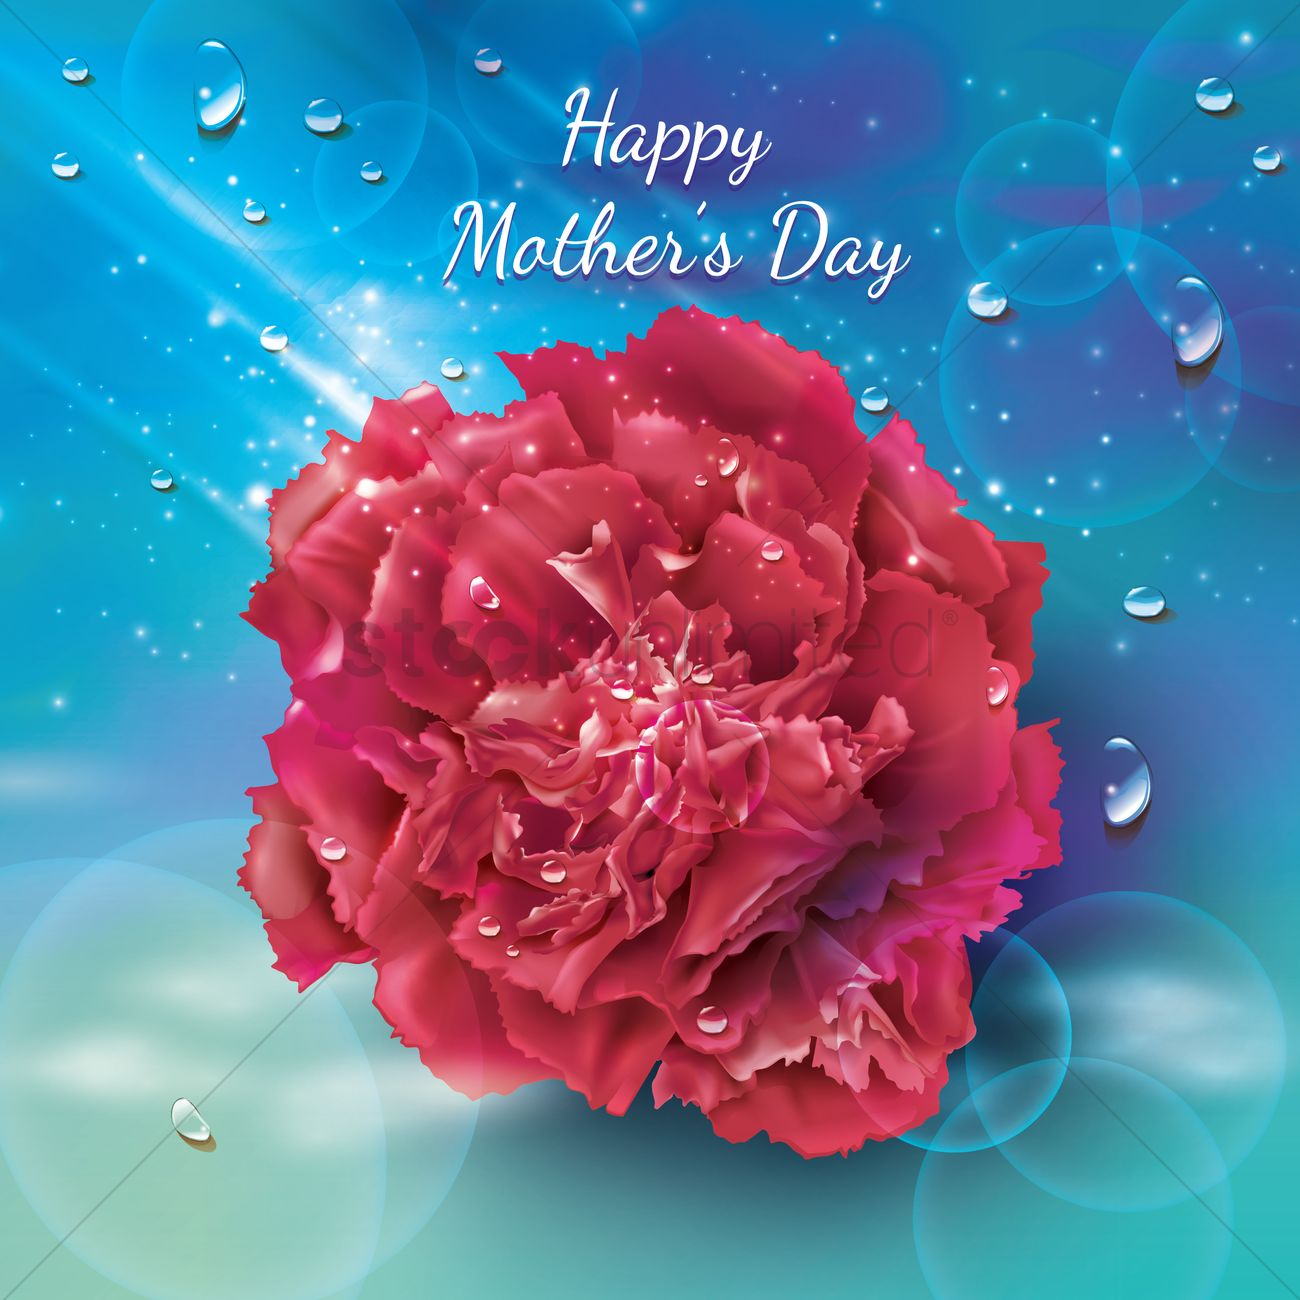 Happy mothers day card with flower vector image 1810971 happy mothers day card with flower vector graphic kristyandbryce Image collections